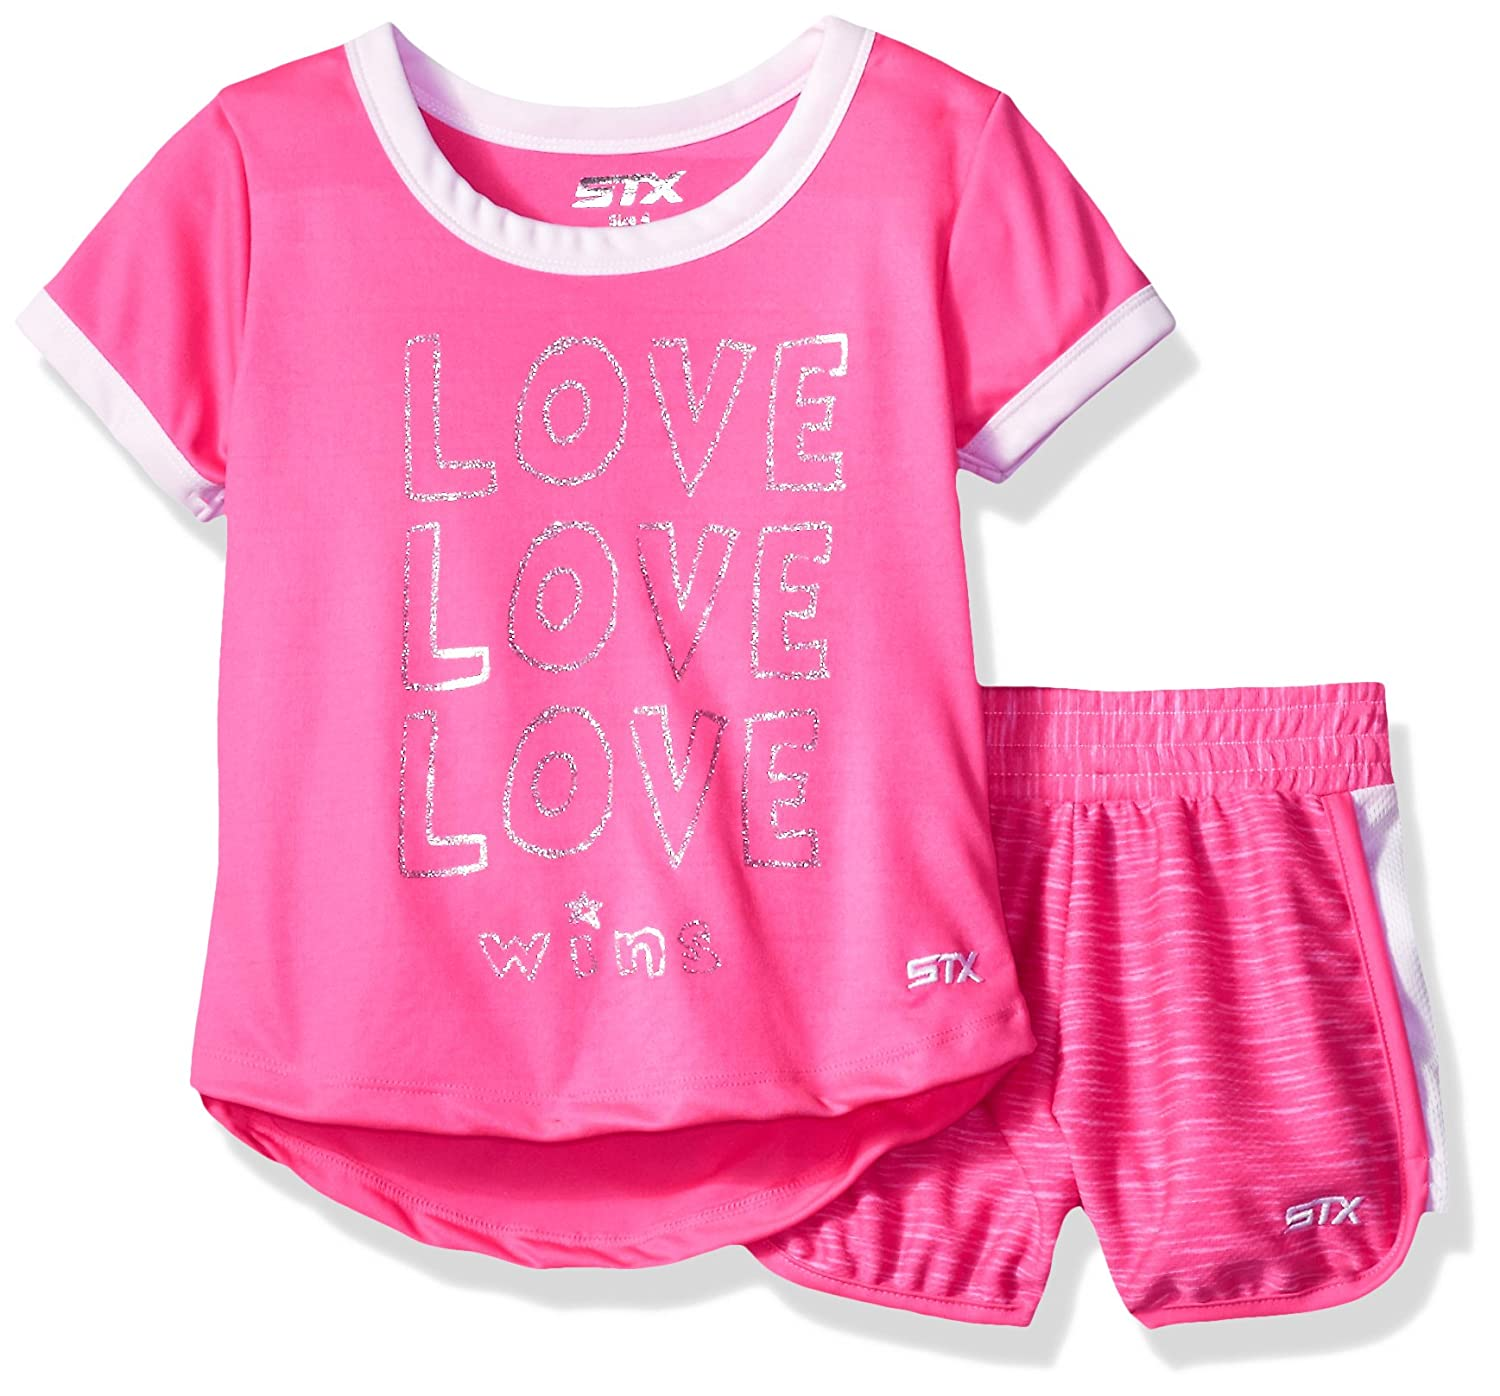 STX Girls T-Shirt and Short Set More Styles Available